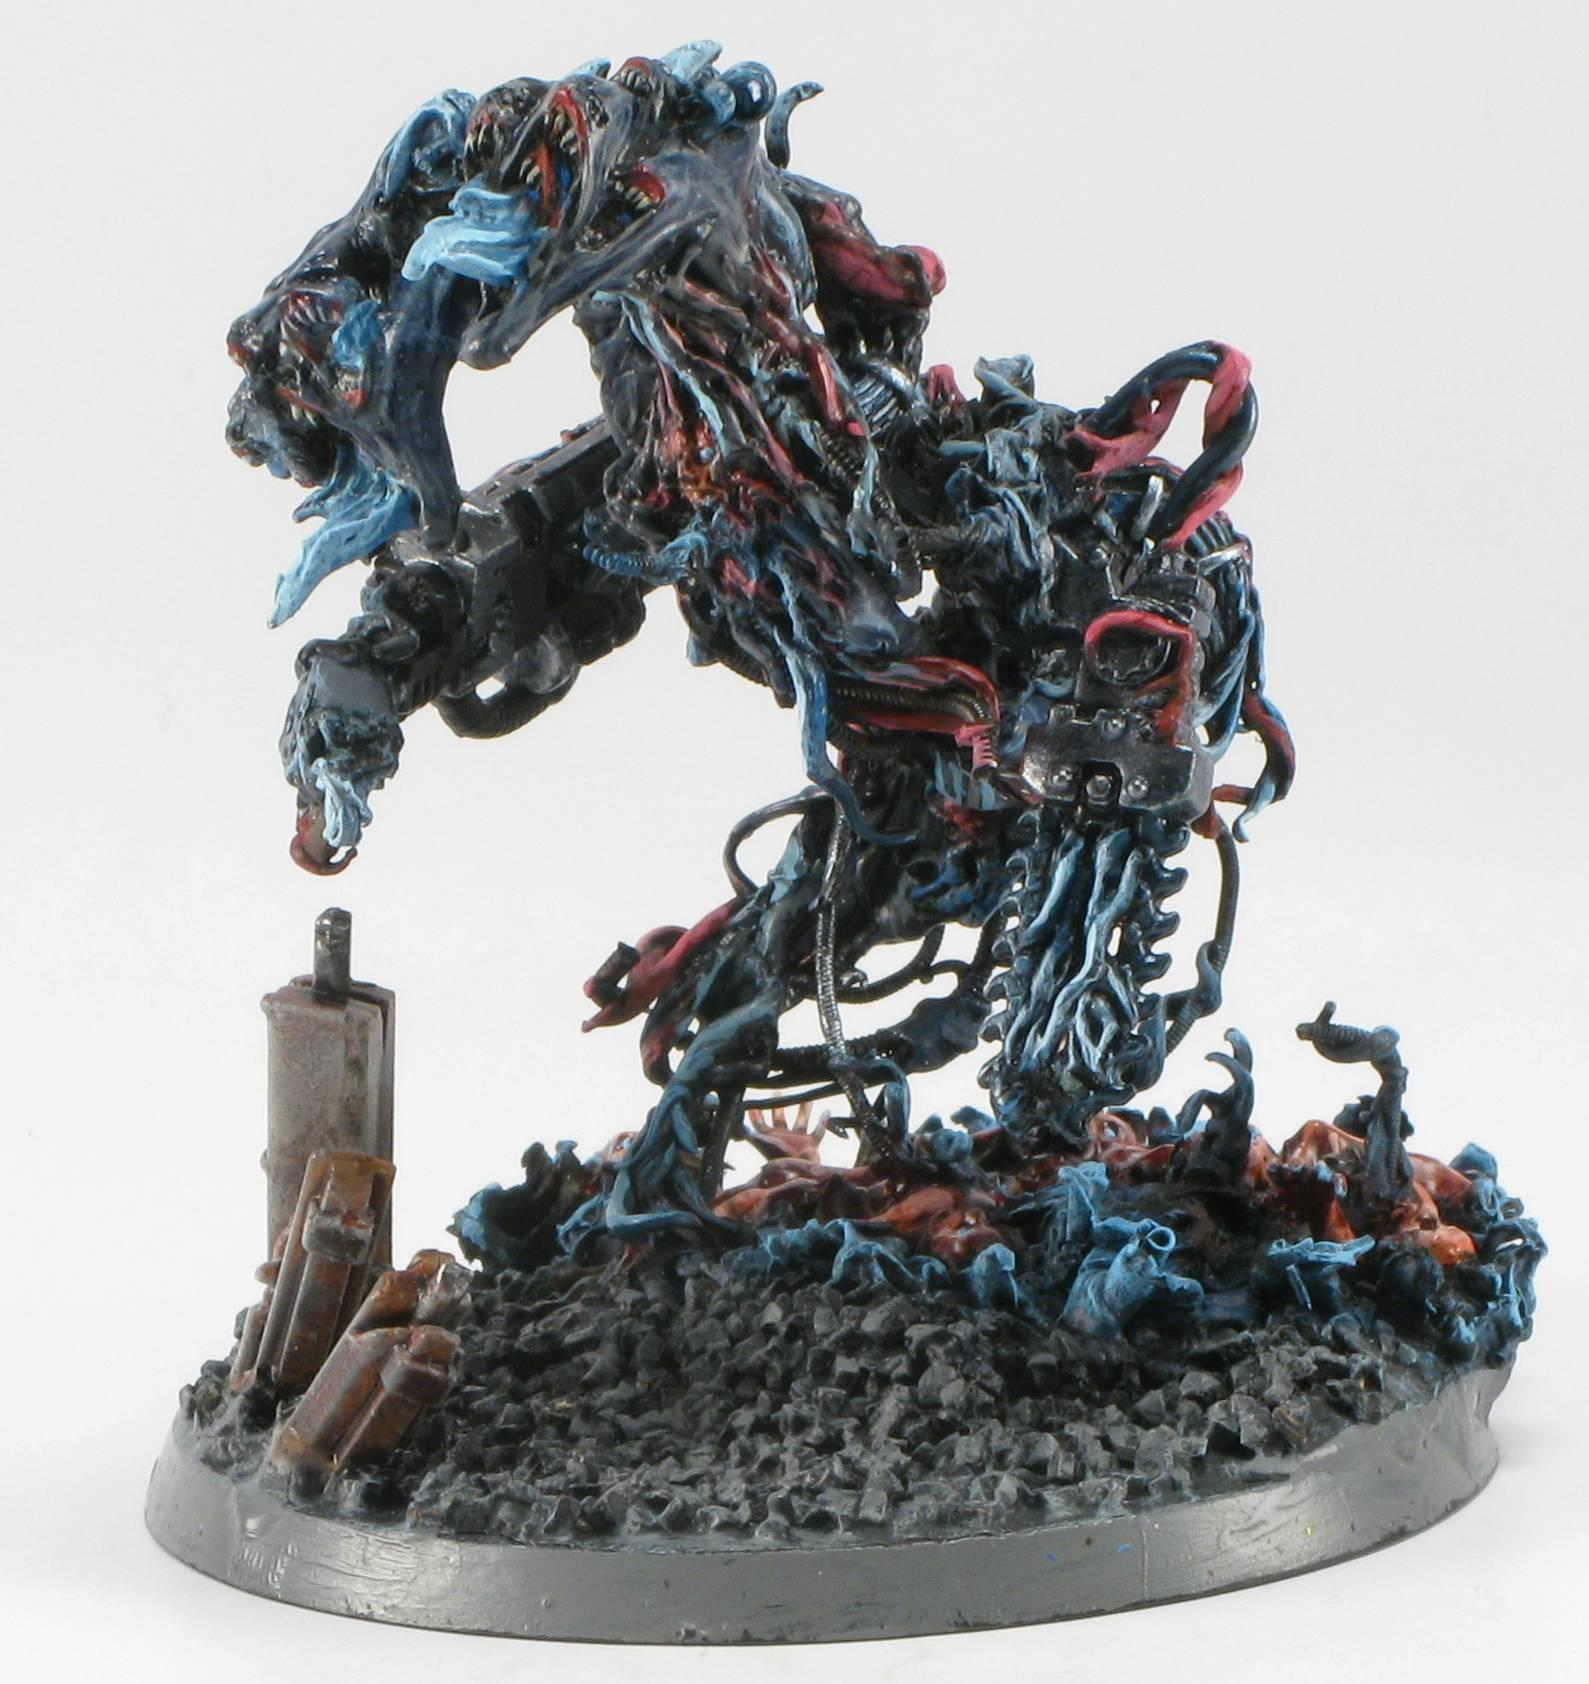 Chaos Daemons, Conversion, Lord Of Change, Warhammer 40,000